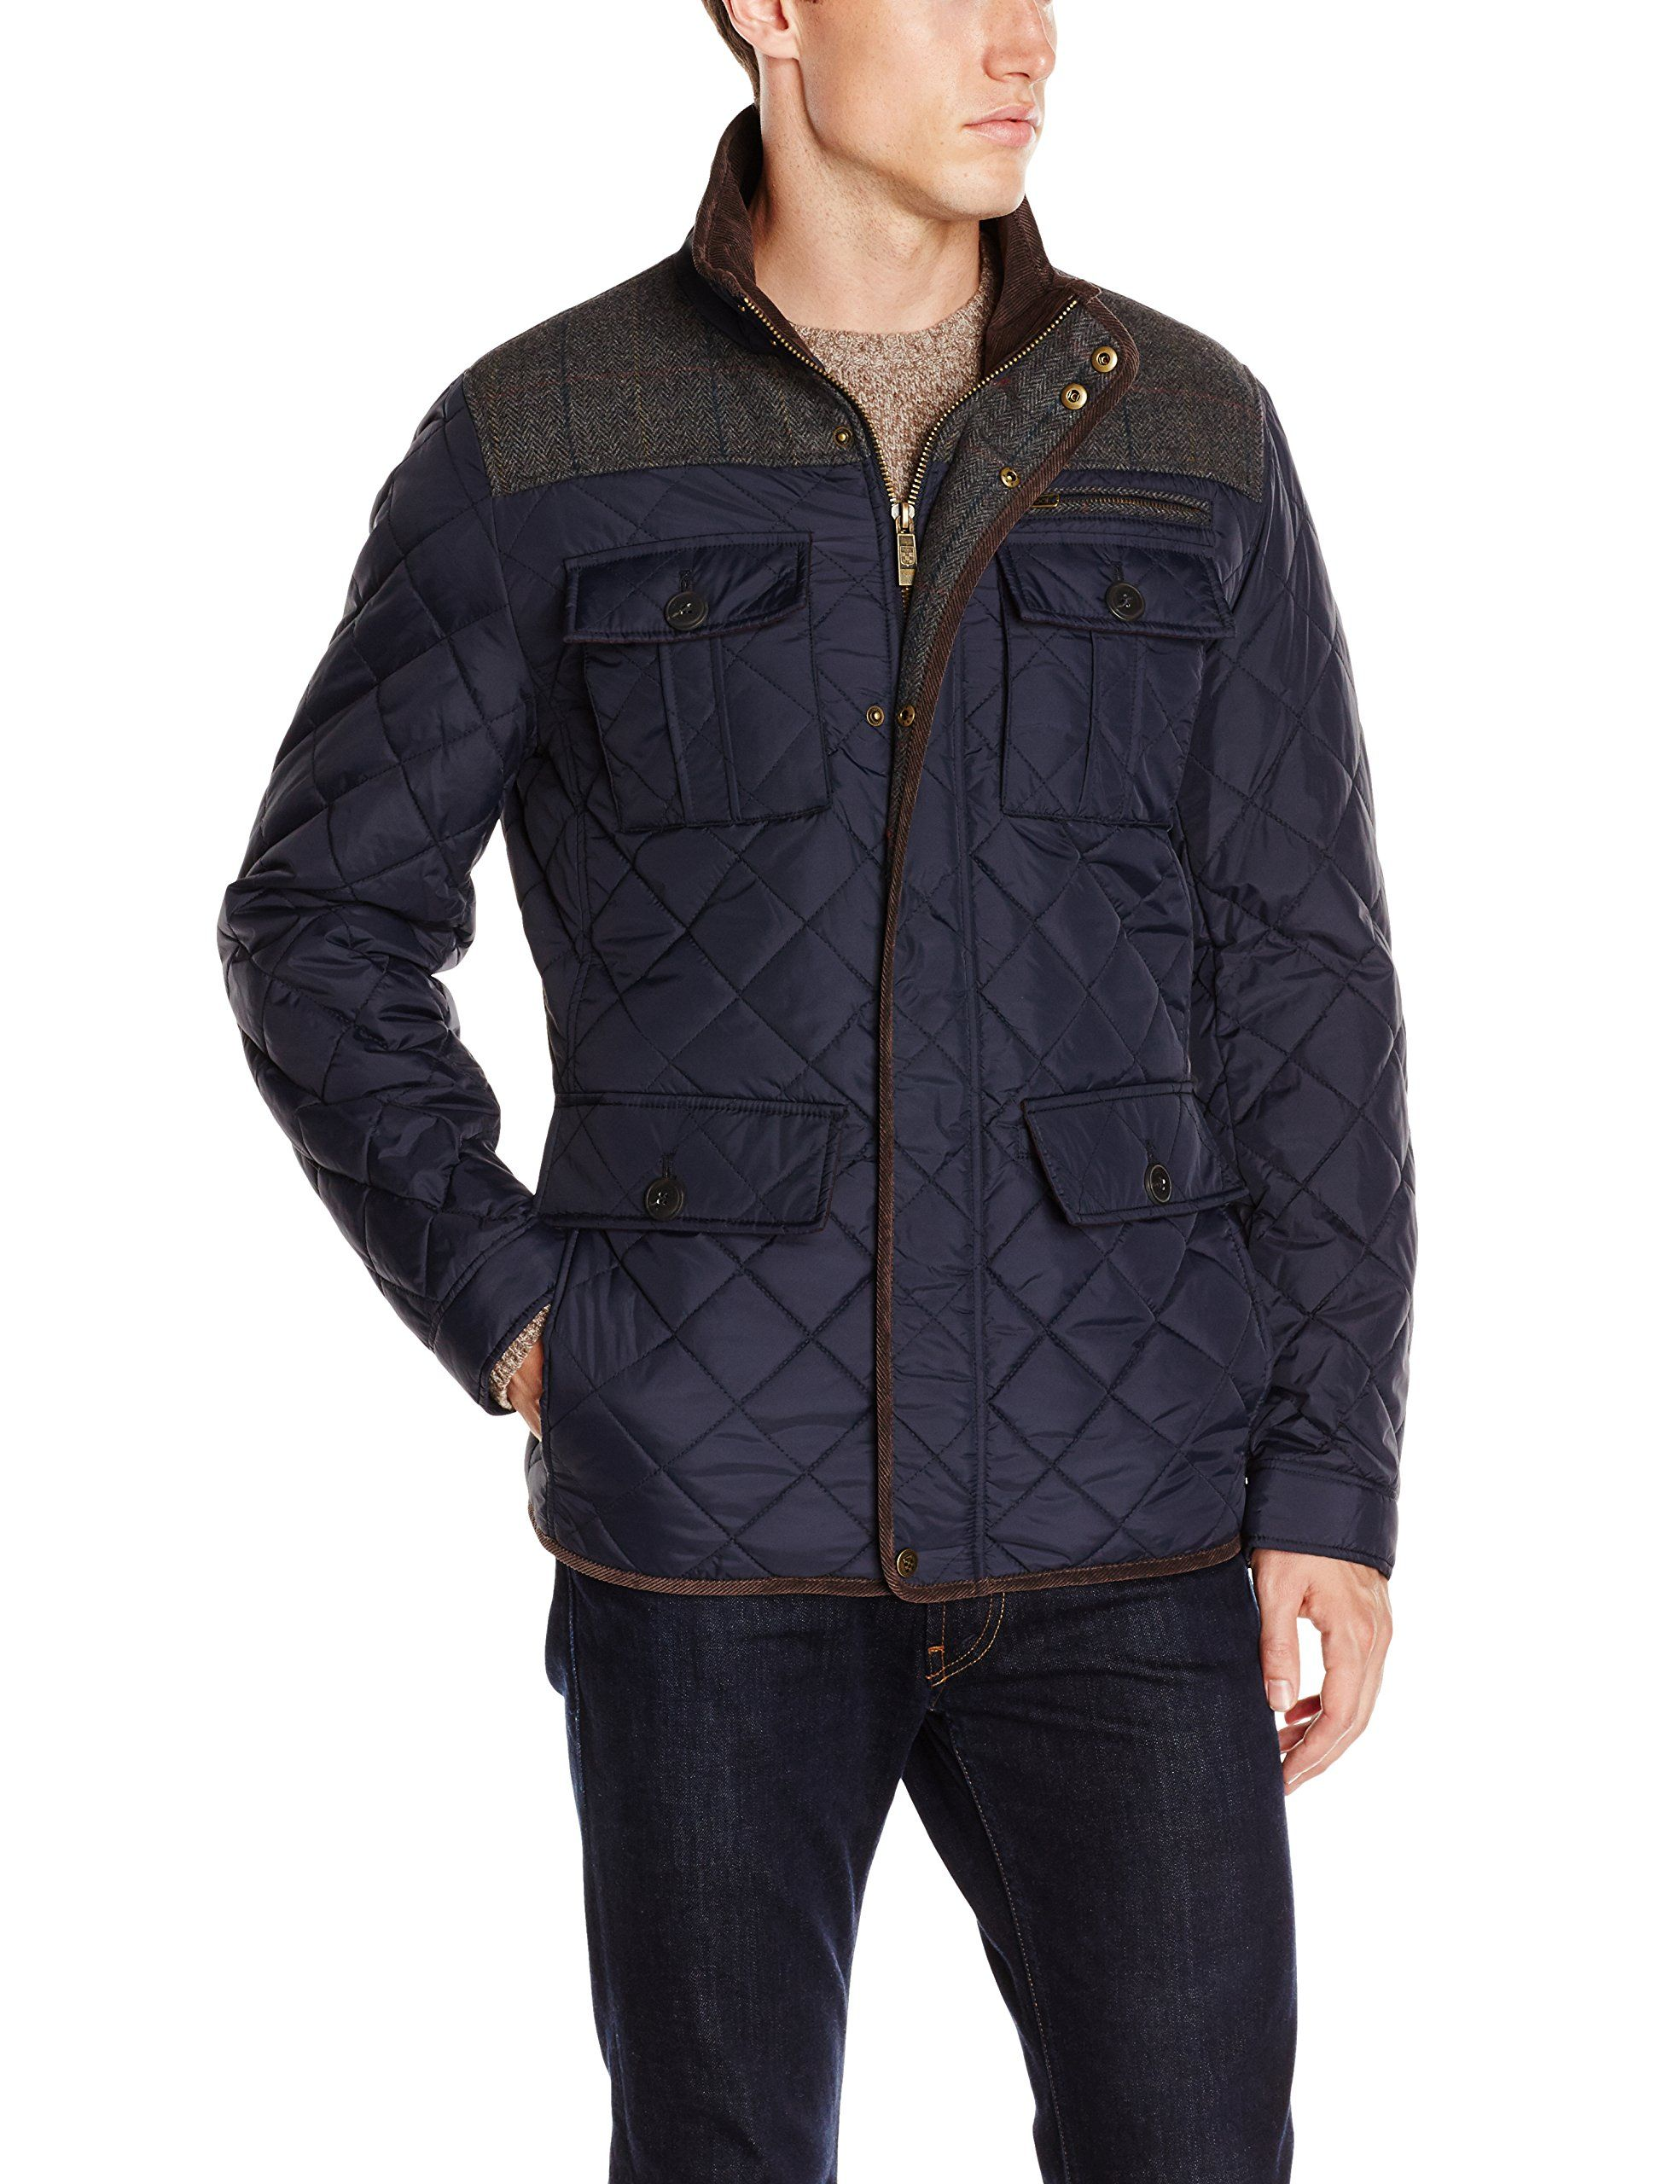 vince s camuto jackets l women womens jacket com quilted look quilt collections f img black flcrooks leather crooks